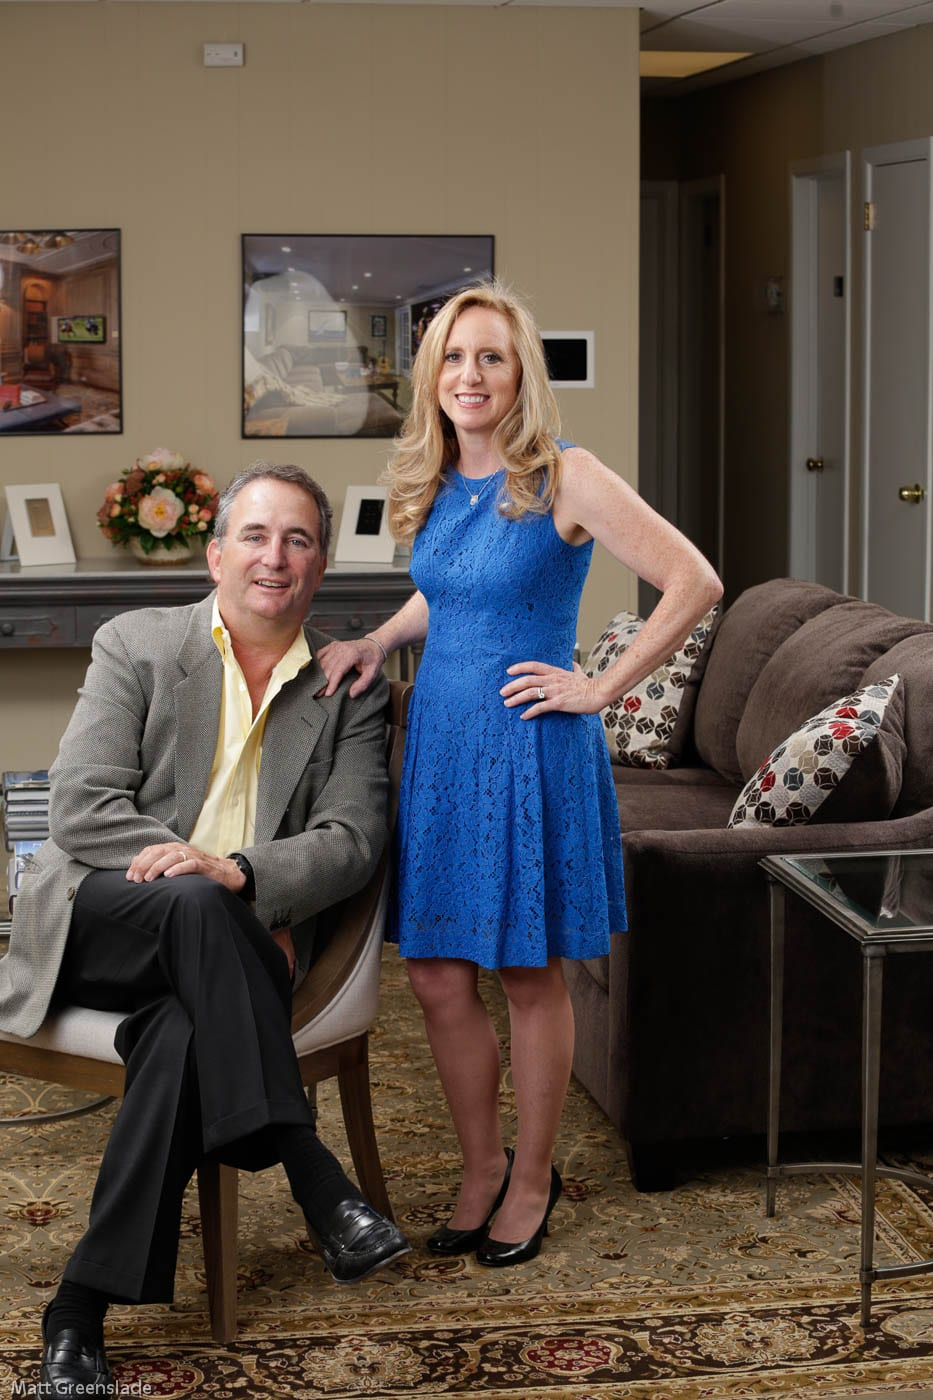 Barry Reiner and Andrea Reiner, President and Vice President of Innerspace Electronics, Inc